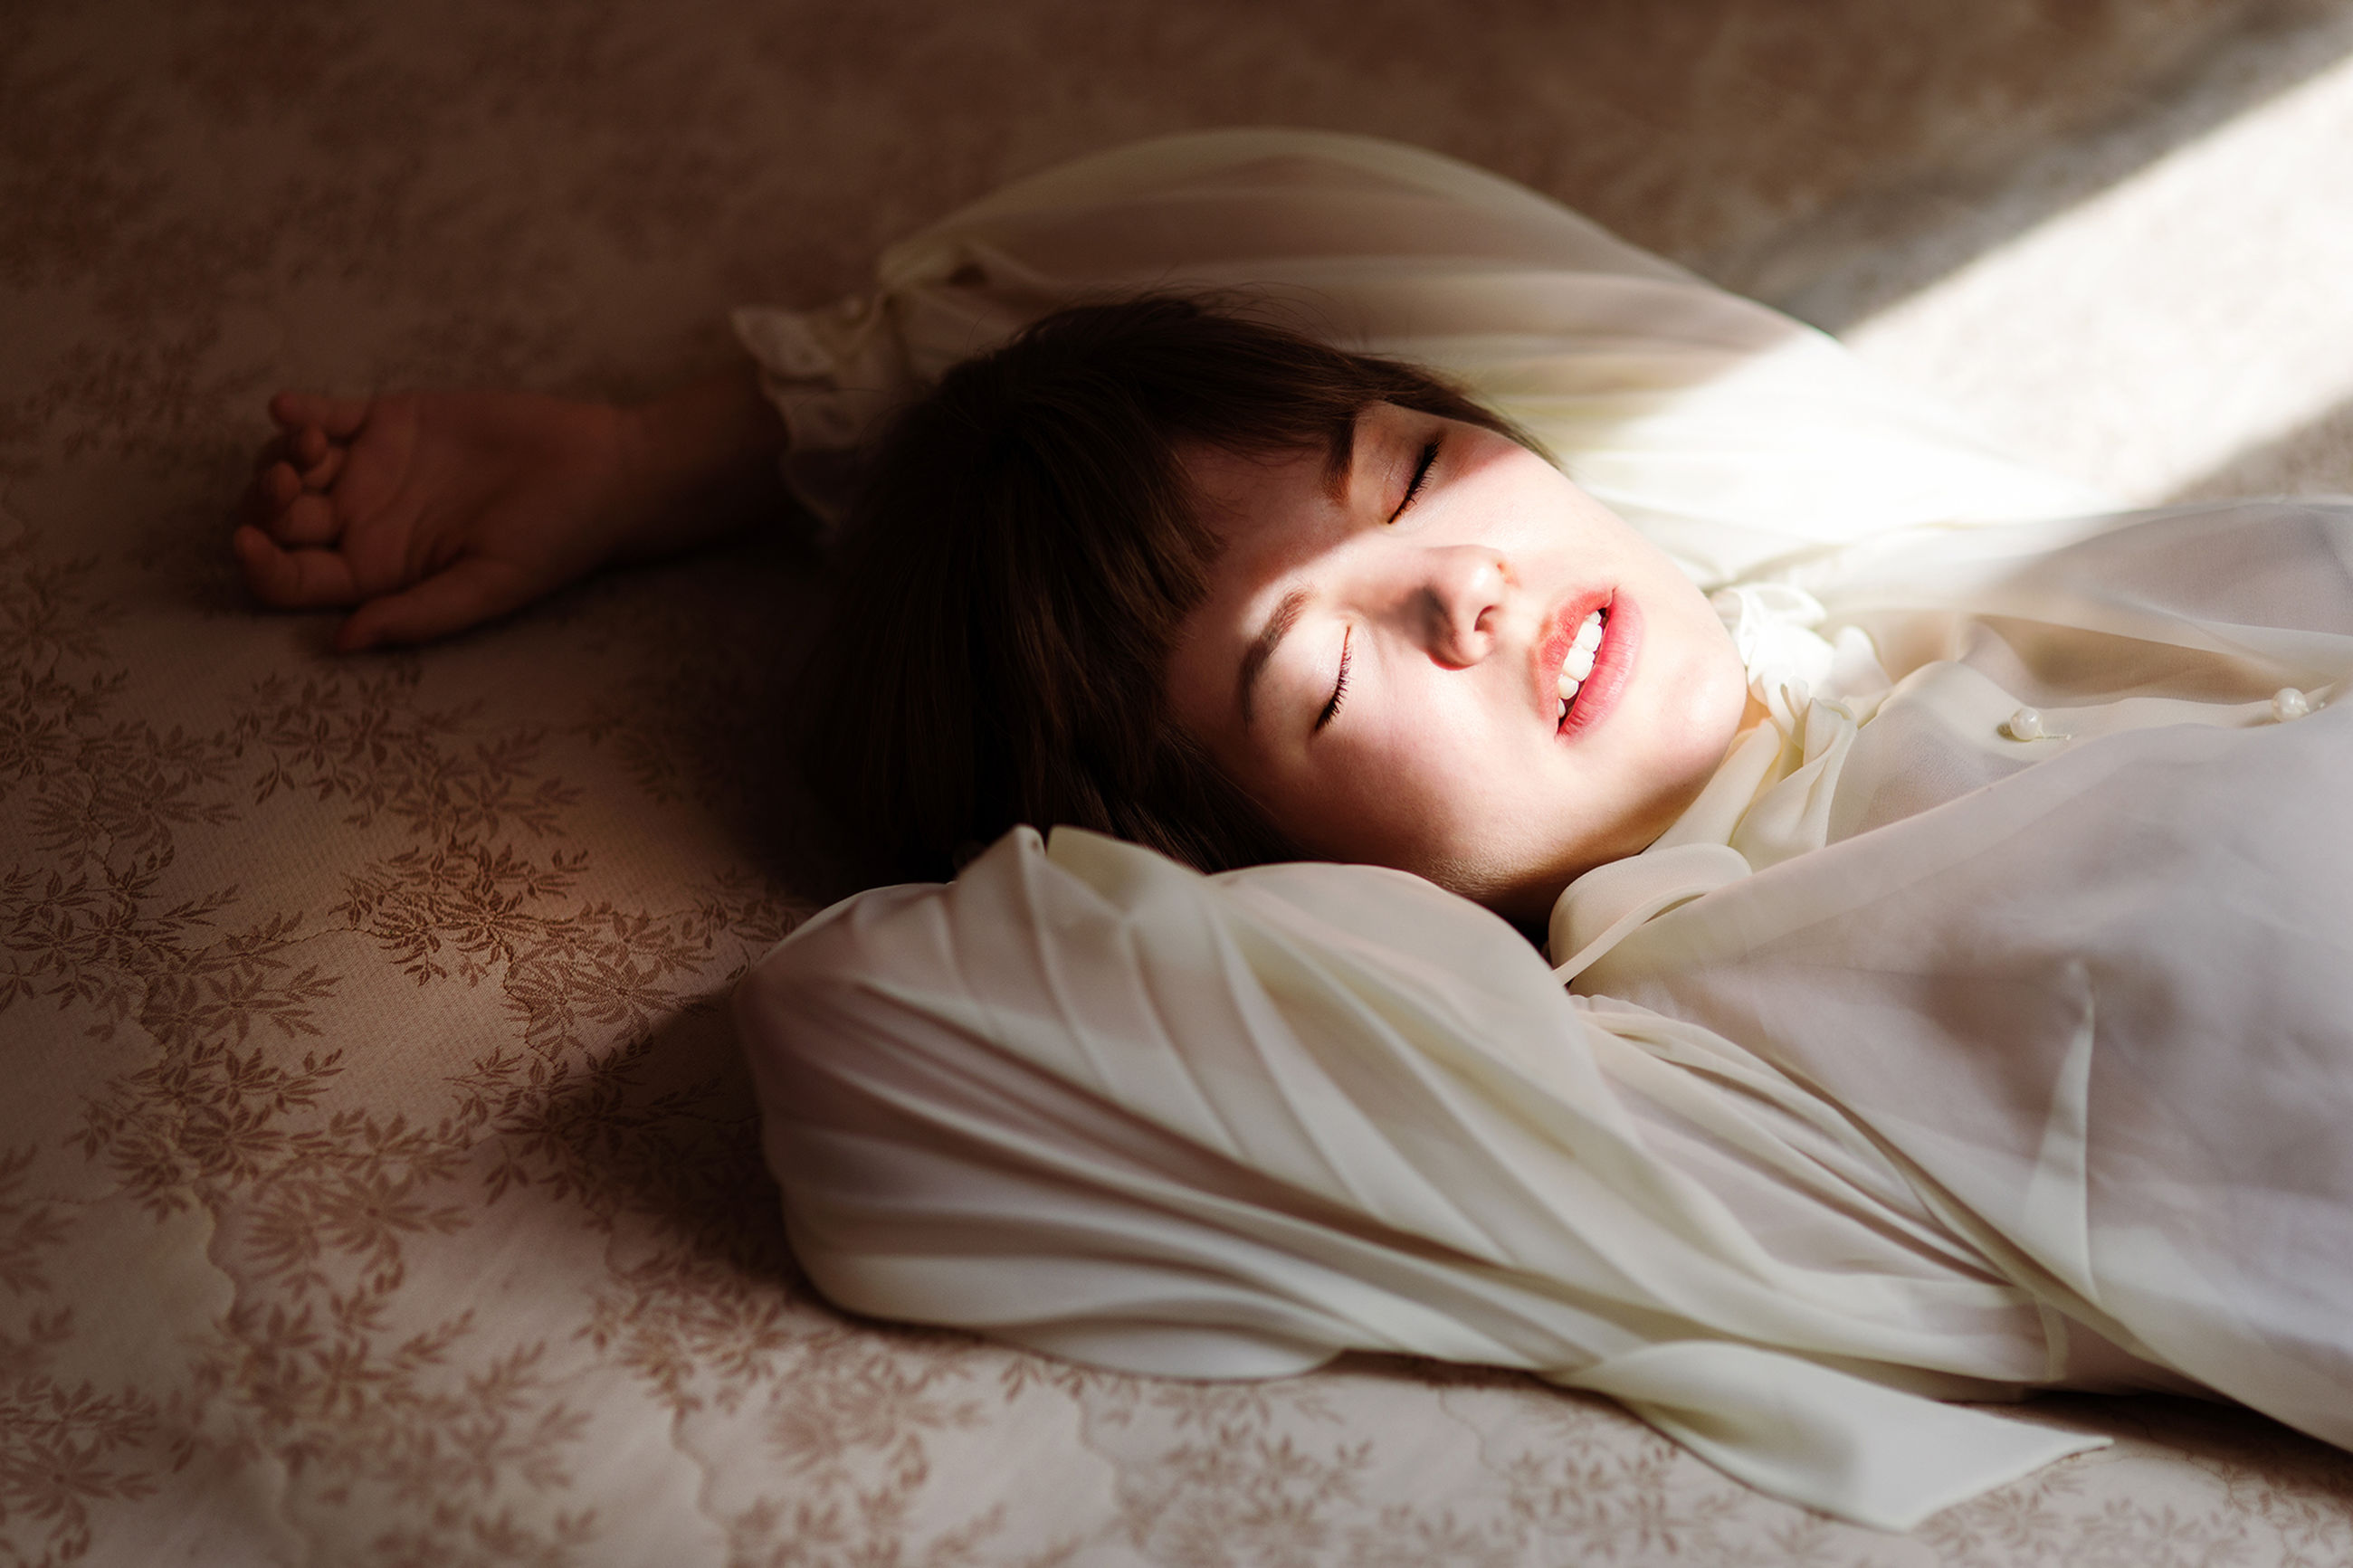 indoors, bed, relaxation, person, lying down, sleeping, home interior, bedroom, lifestyles, childhood, resting, innocence, eyes closed, young adult, comfortable, casual clothing, baby, high angle view